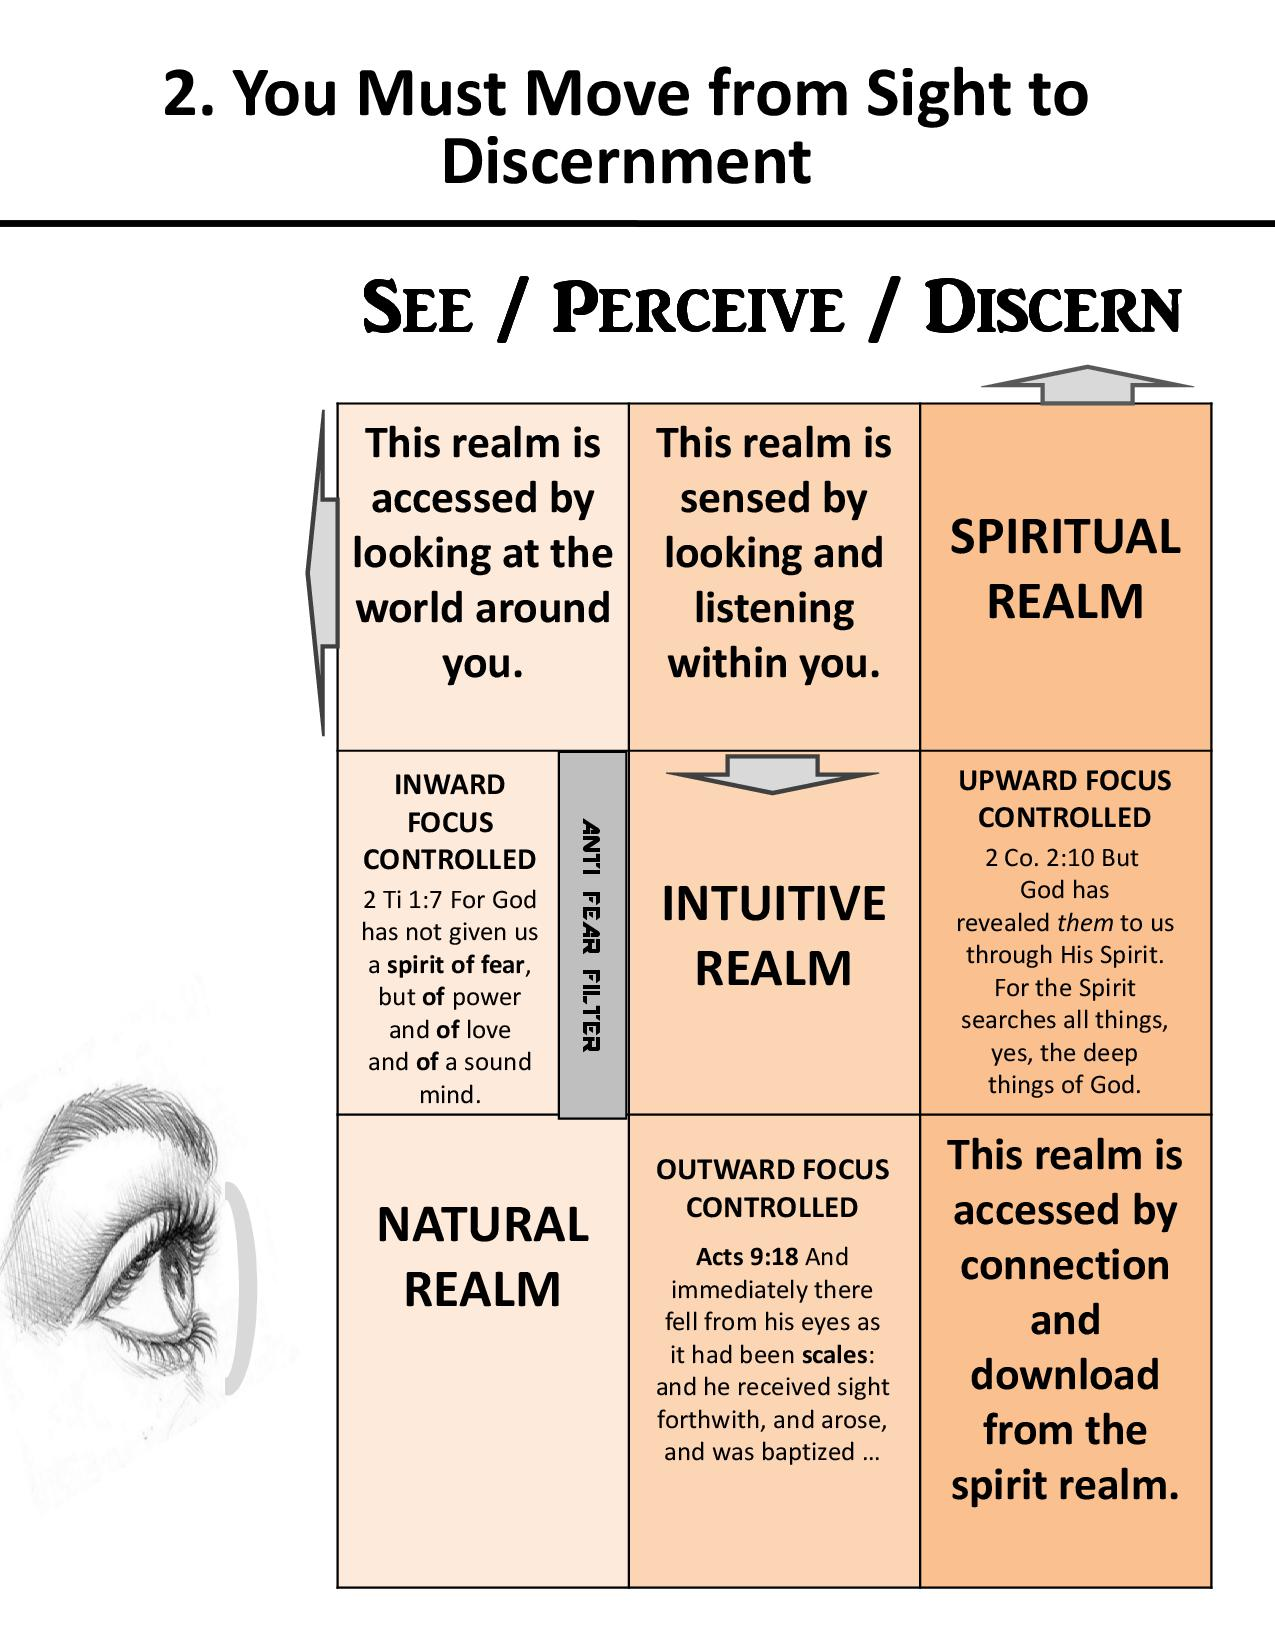 Sight to Discernment